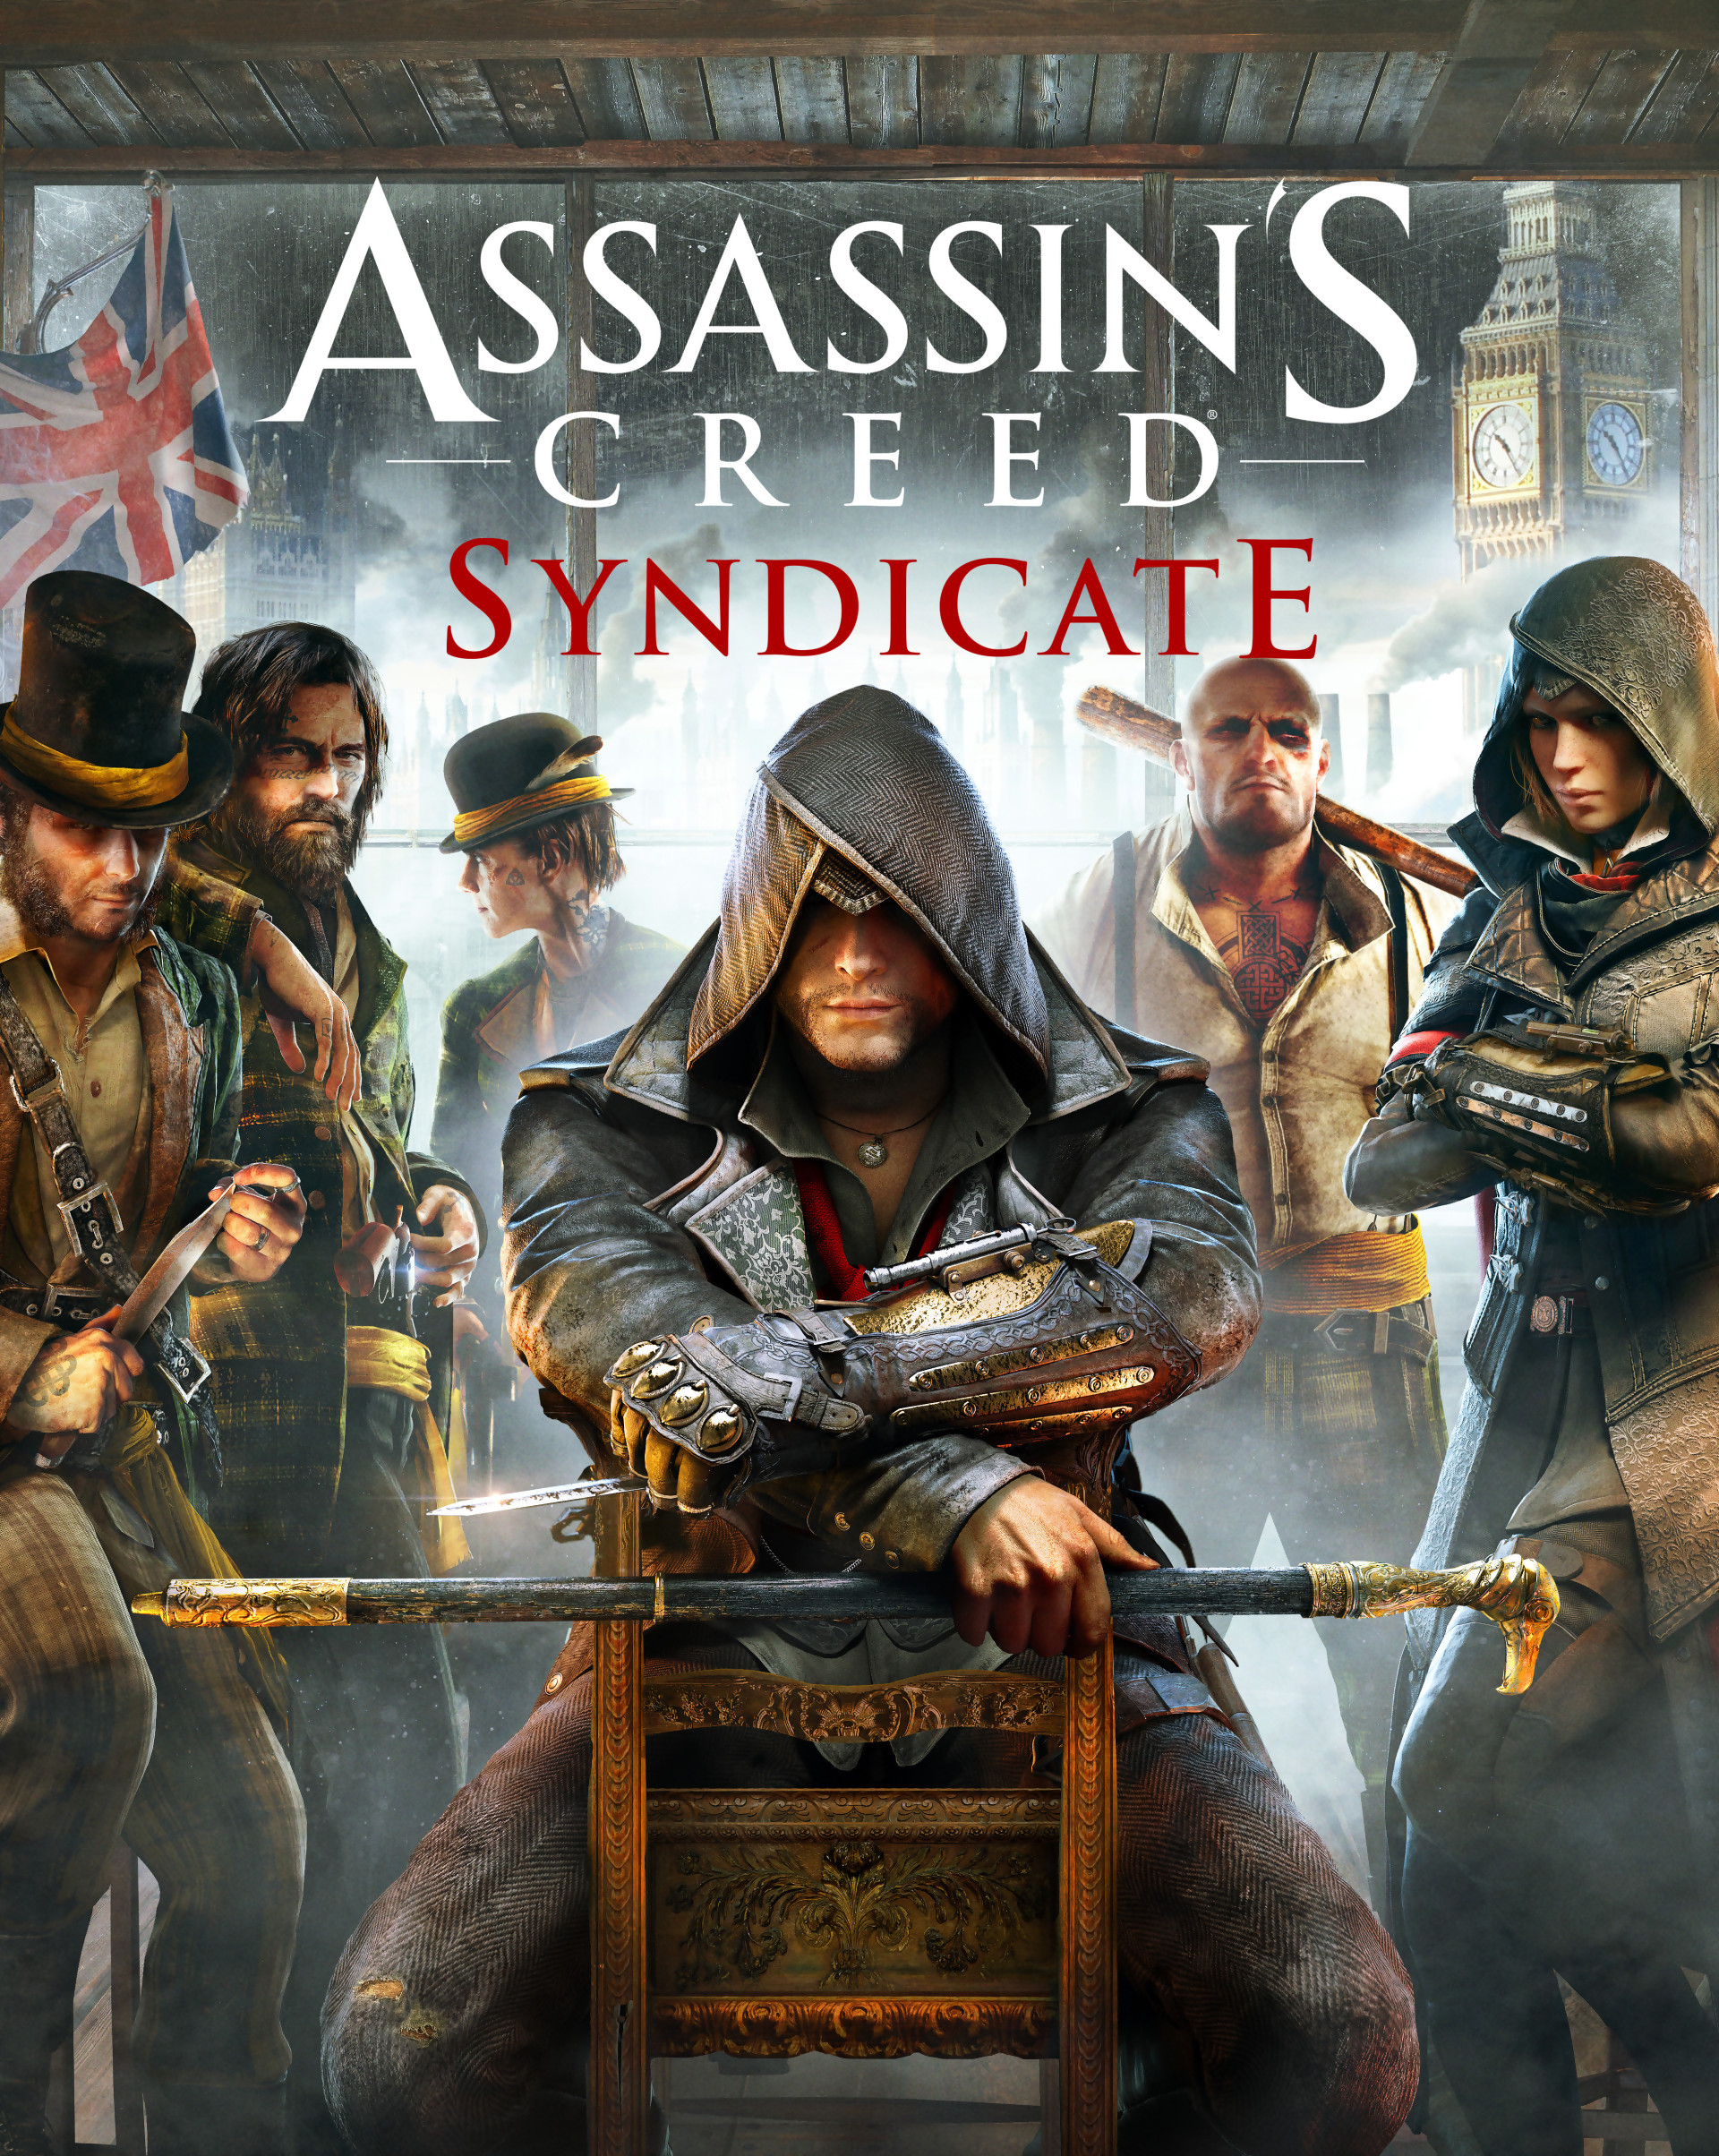 Assassin's creed Syndicate Assassin-s-creed-syndicat-555214abb433f